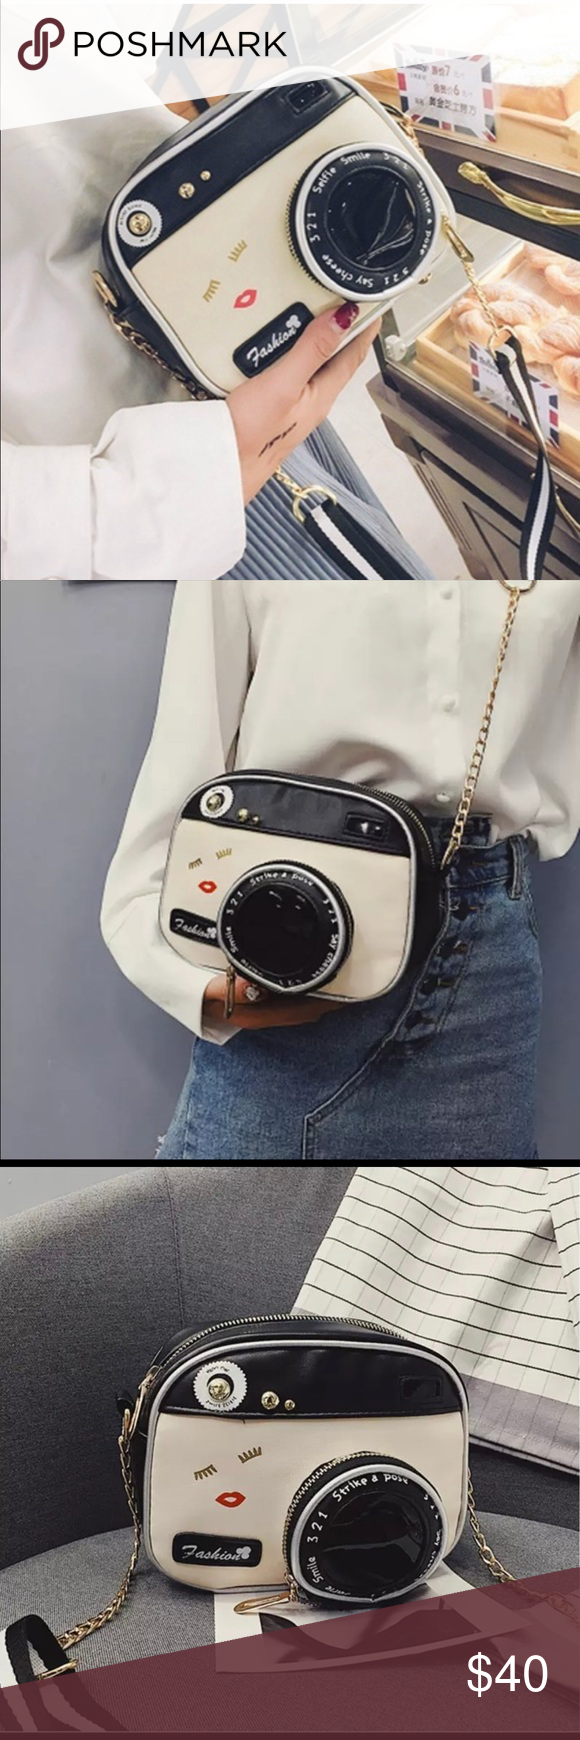 "Say Cheese Camera Purse ???? Measures 7.5"" by 6"" and 3"" deep. adorable Crossbody bag! Faux leather. Brand new in package unbranded Bags Crossbody Bags #camerapurse"